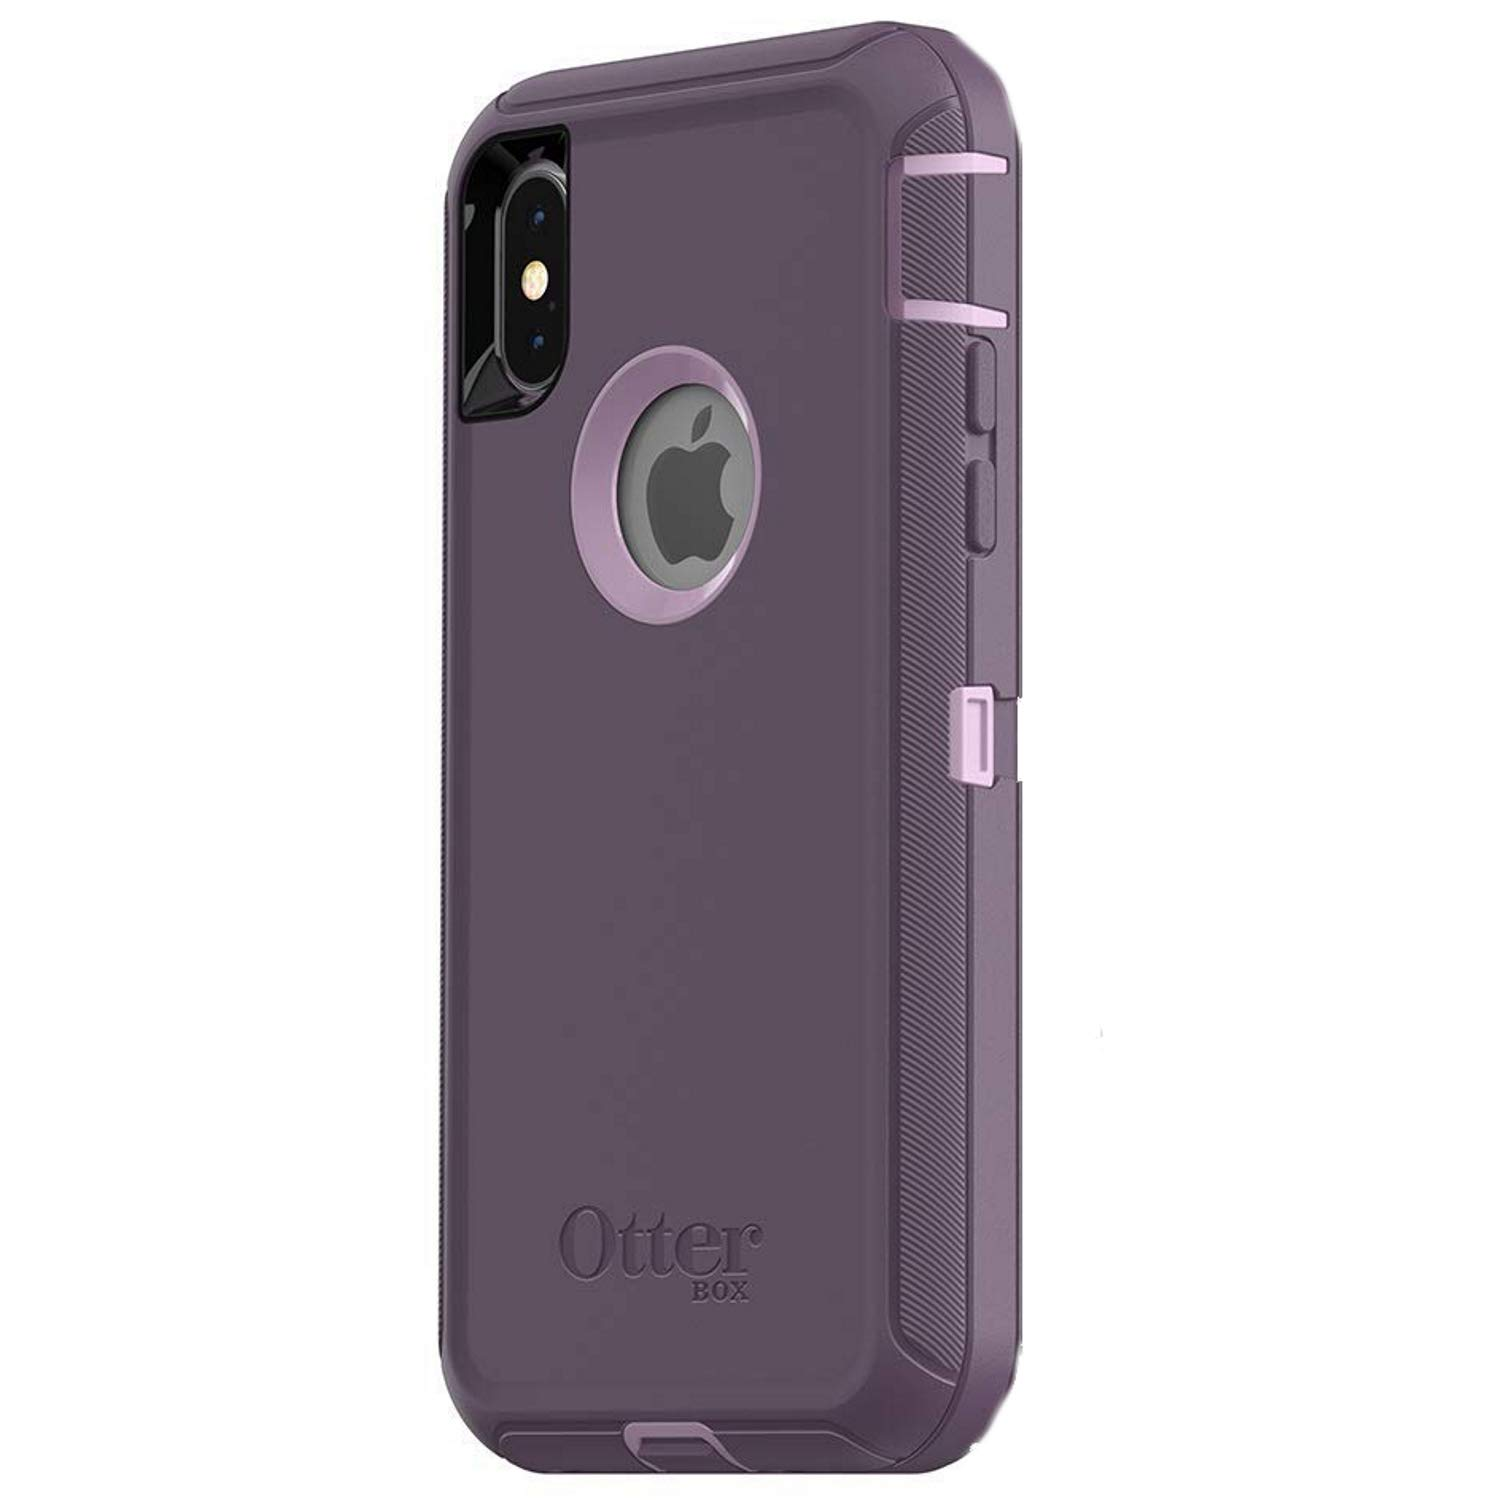 OtterBox Defender Series Case for iPhone X & iPhone Xs (ONLY), Case Only - Bulk Packaging - Purple Nebula (Winsome Orchid/Night Purple)